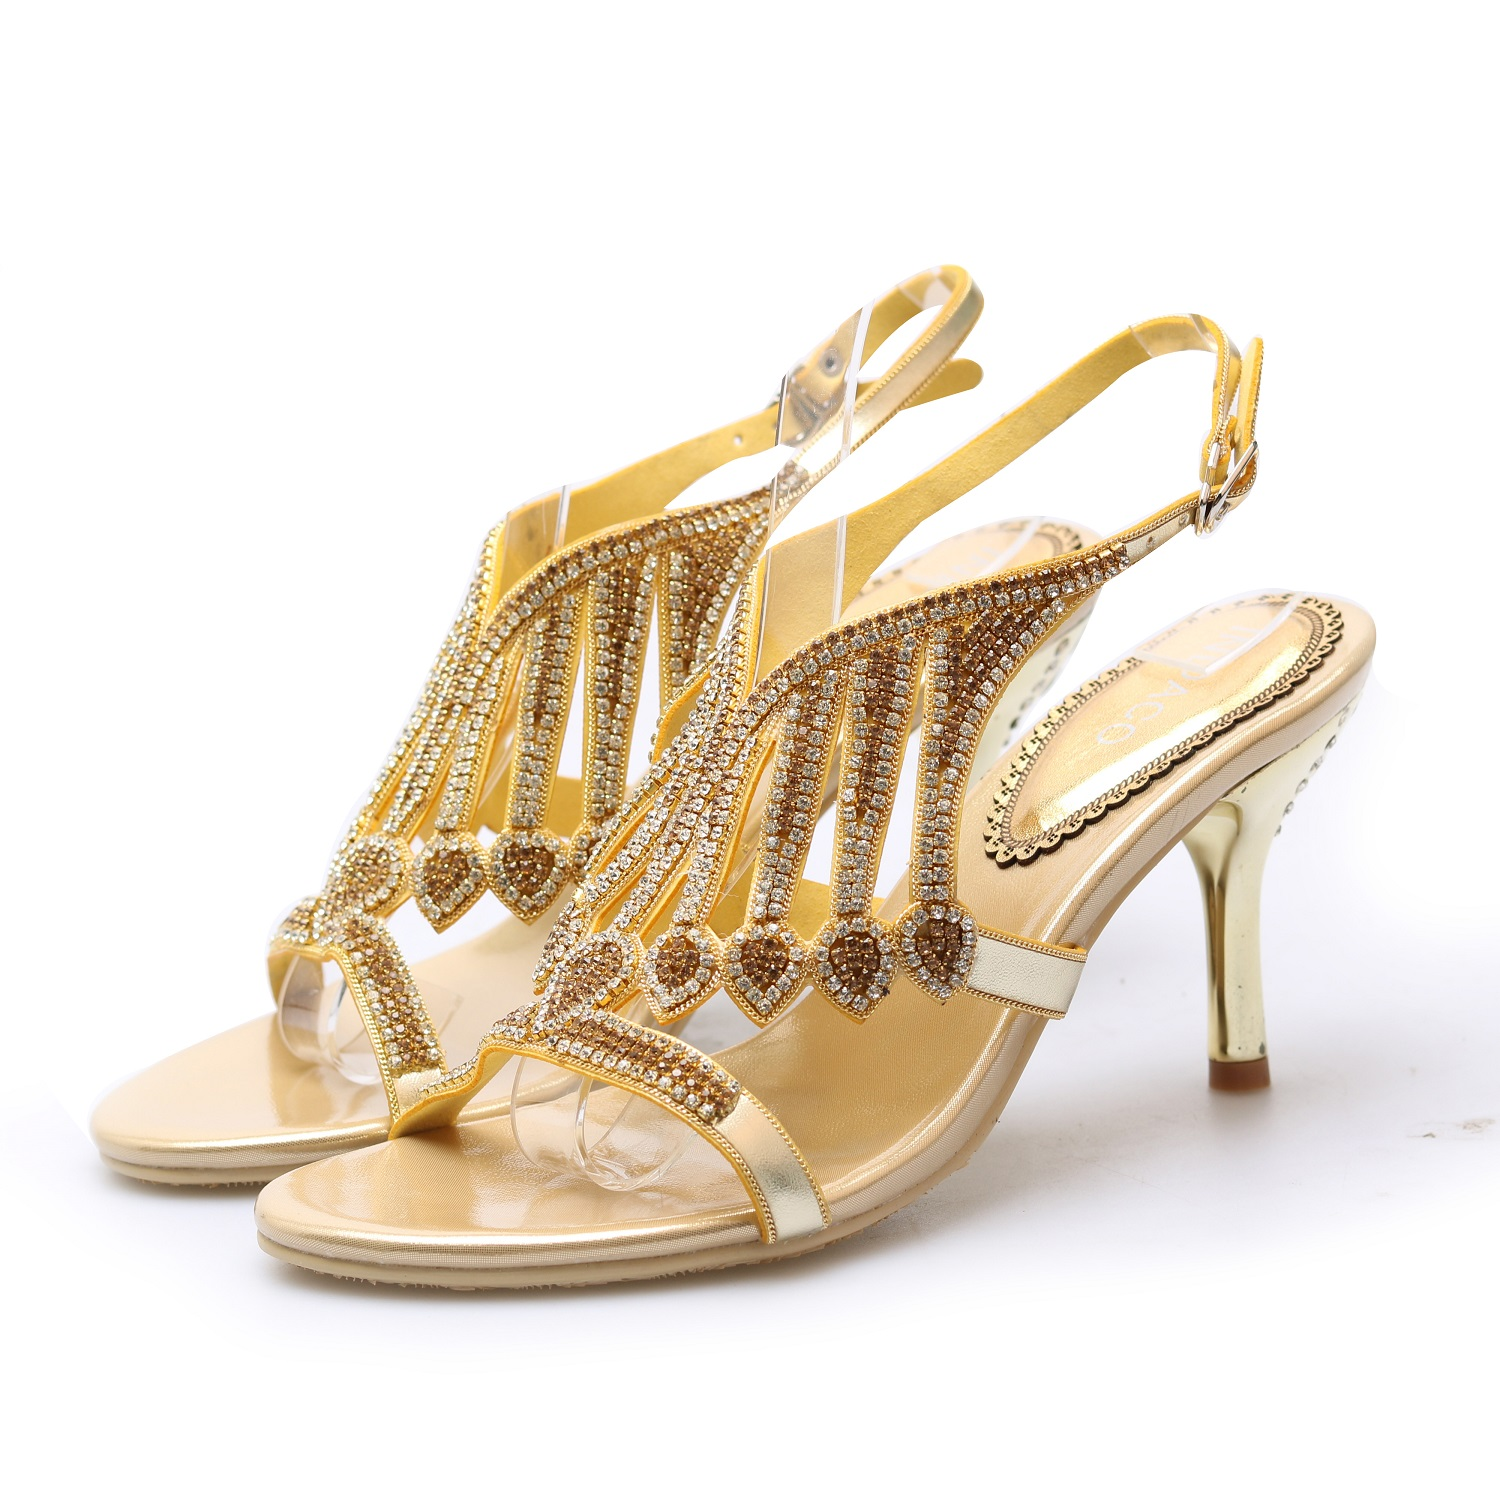 f10afa4bc0c Leather High Heels Sandals Women Summer Shoes Gold Silver Elegant  Rhinestone High heeled Shoes Large Size 44 Chaussure Femme-in High Heels  from Shoes on ...